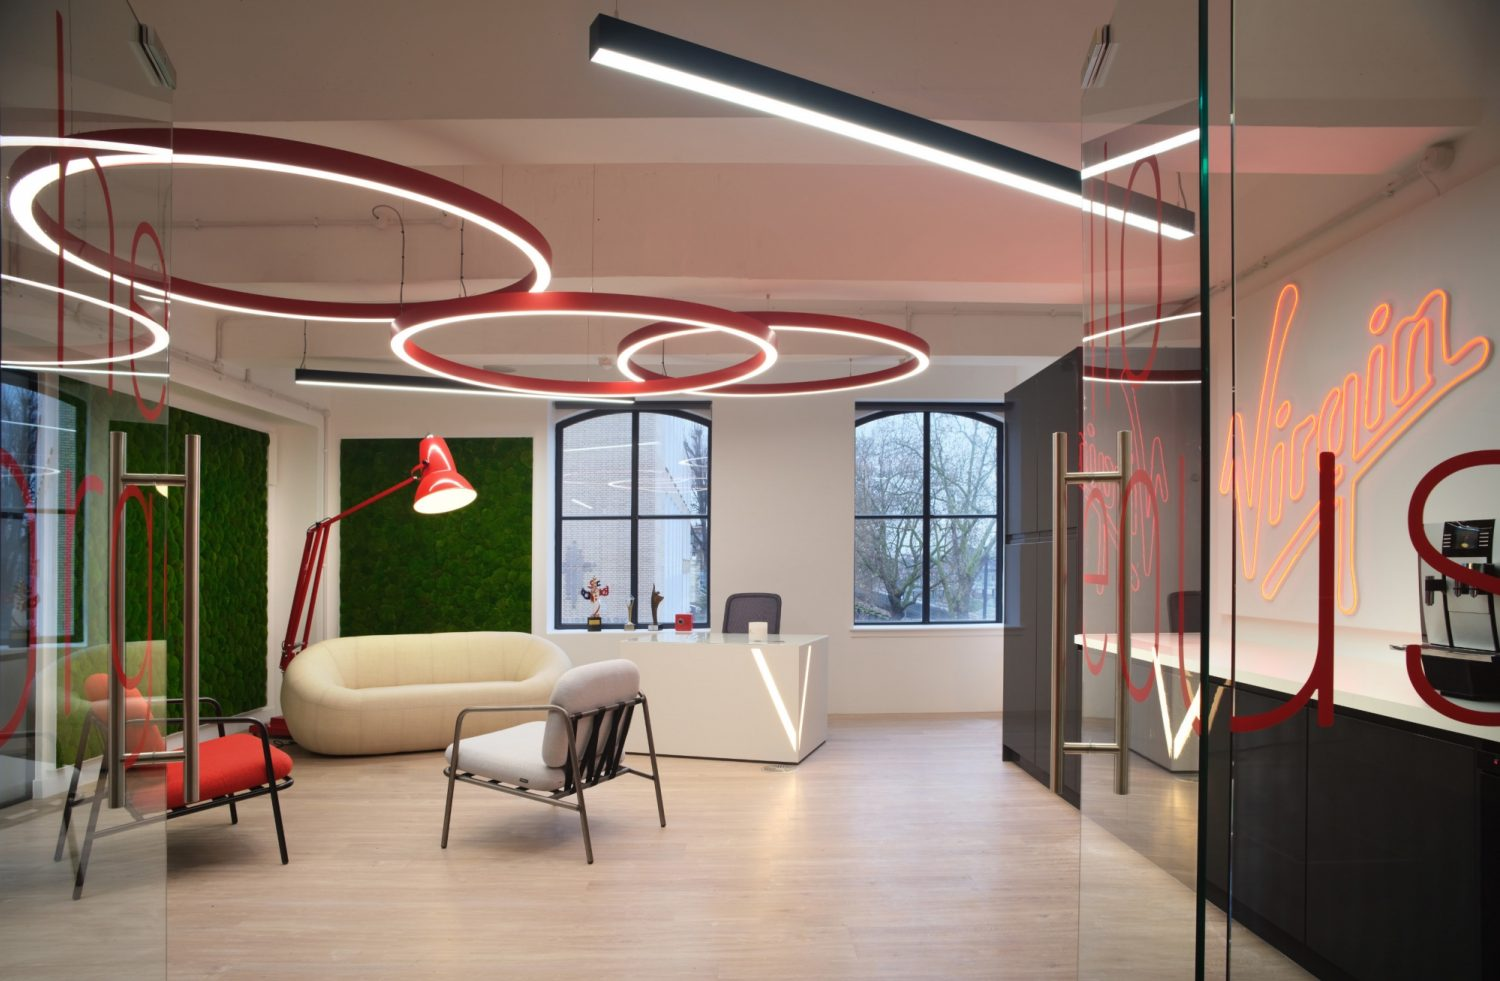 Virgin Loyalty reception fit out